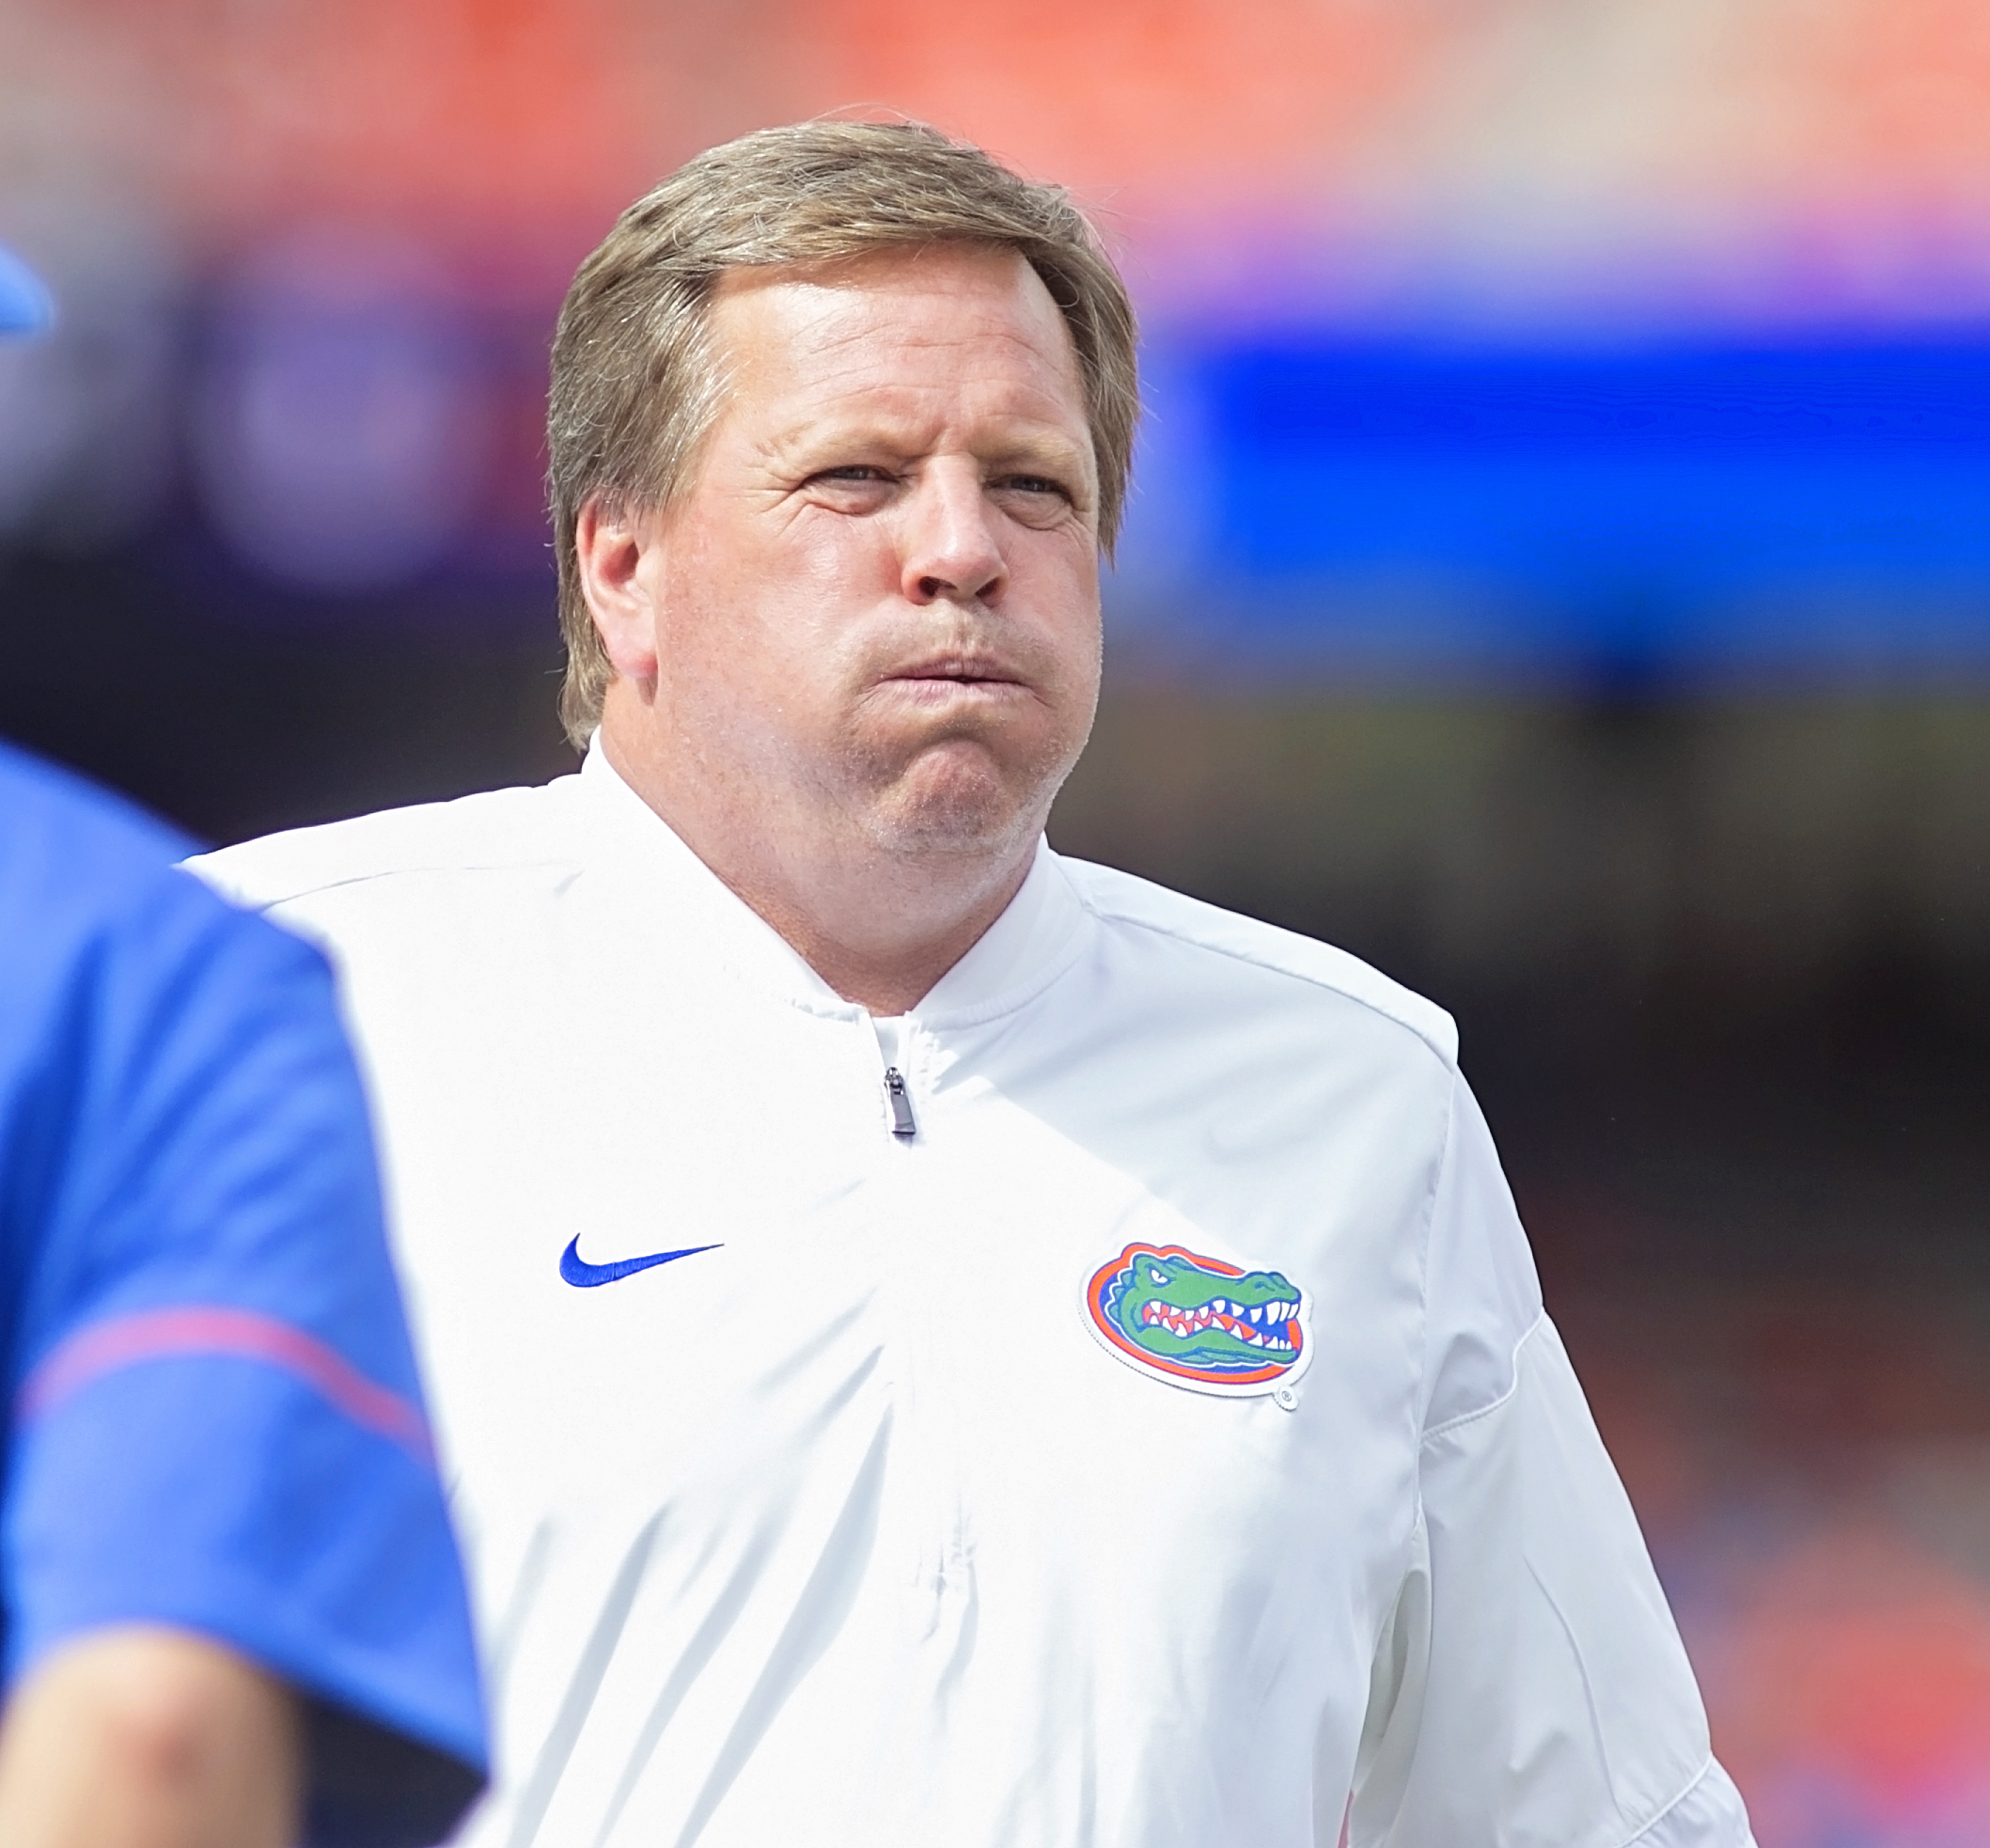 McElwain didn't last long with the Gators./CARMEN MANDATO